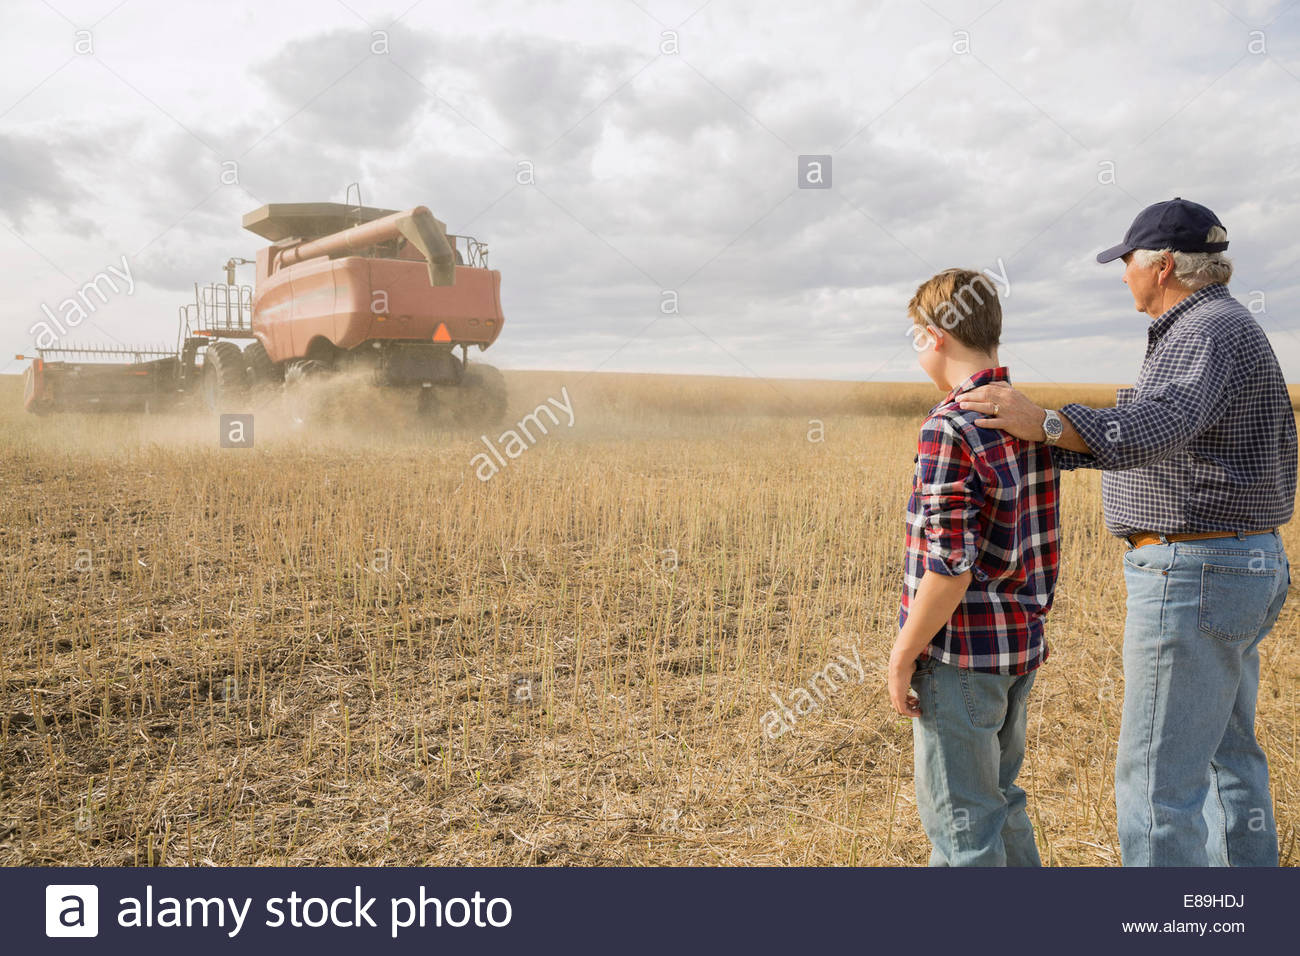 Grand-père et petit-fils regardant combine harvester in field Photo Stock